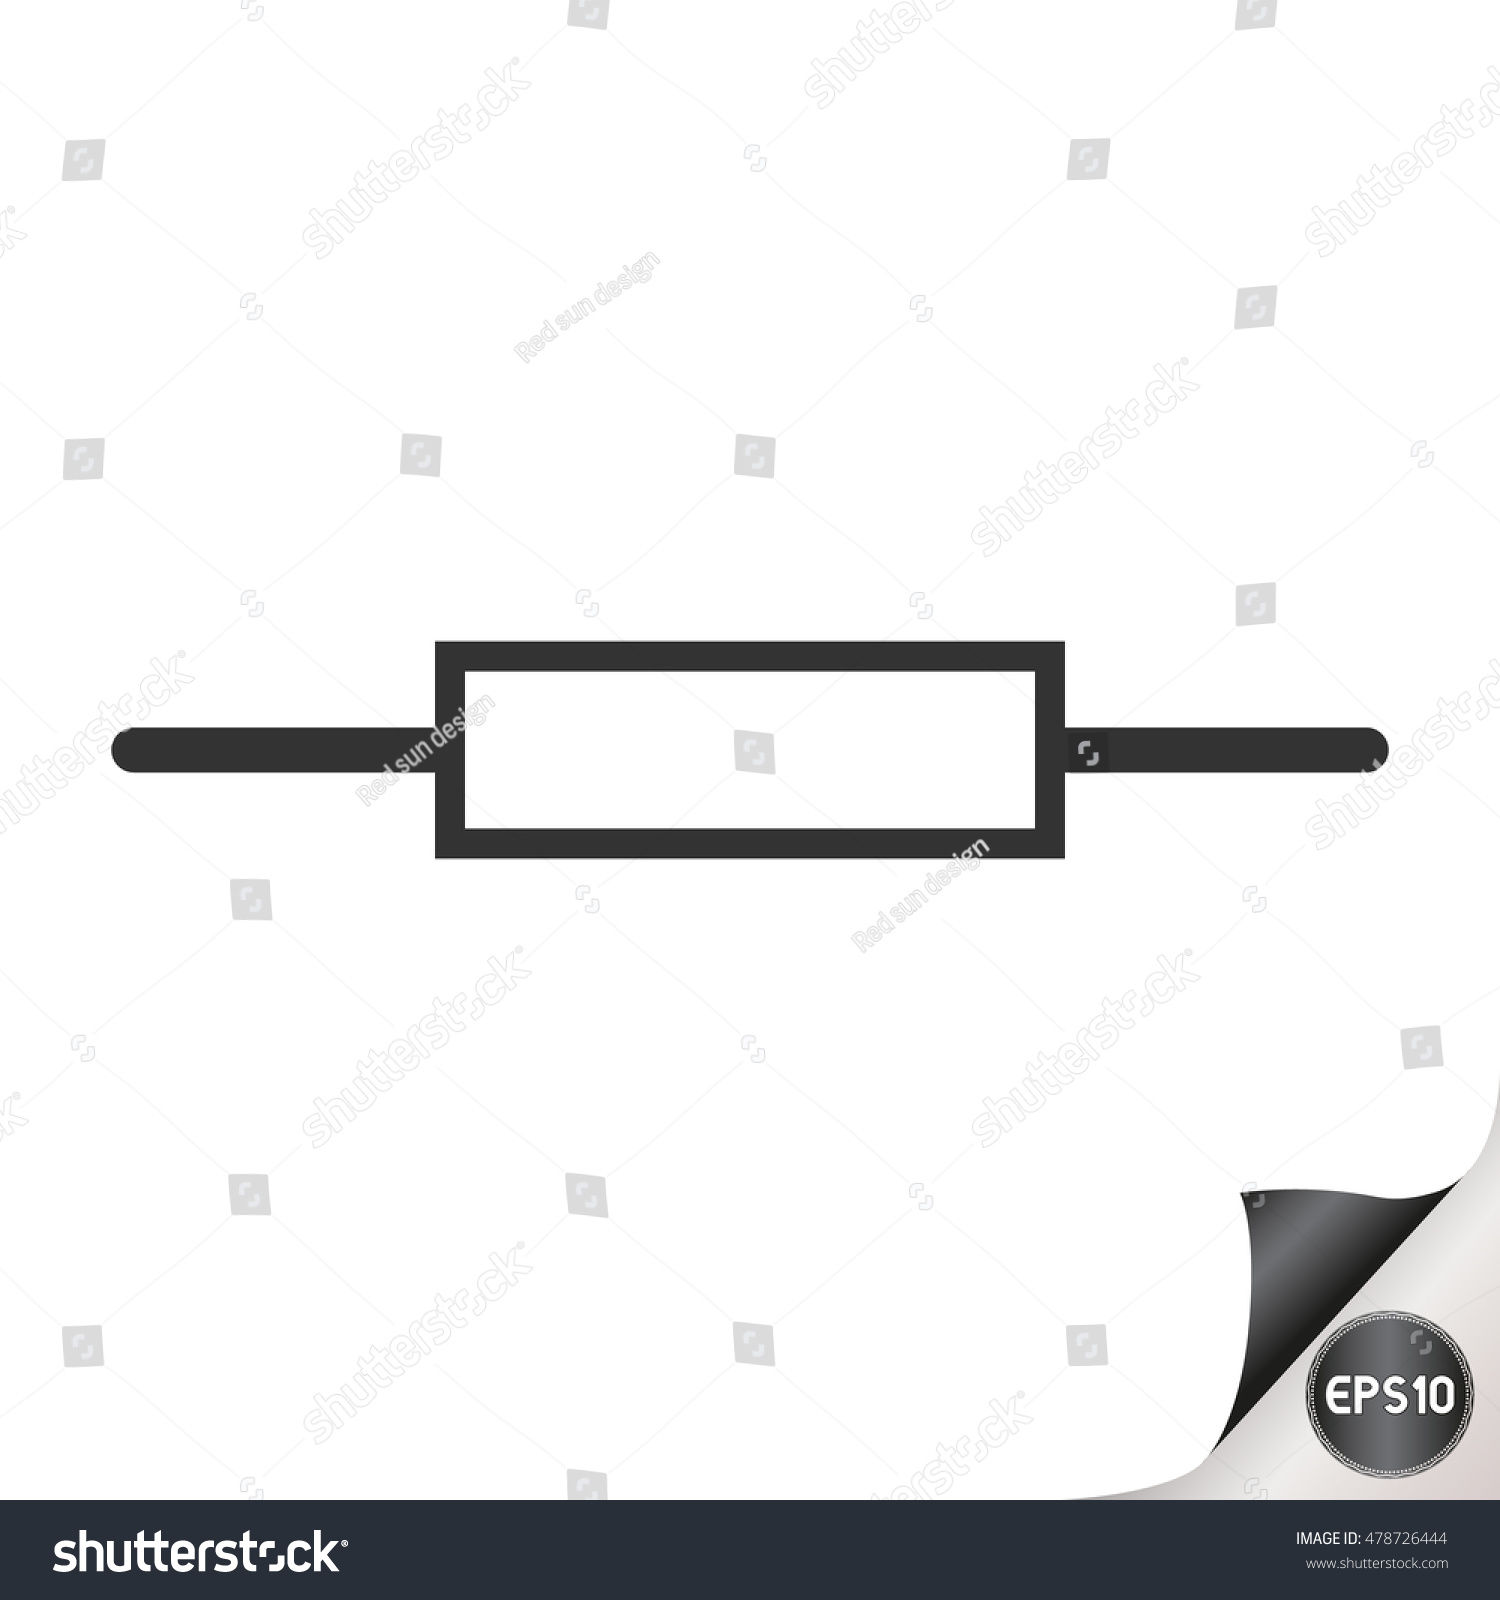 Electronic Circuit Symbol Resistor Stock Vector 478726444 - Shutterstock